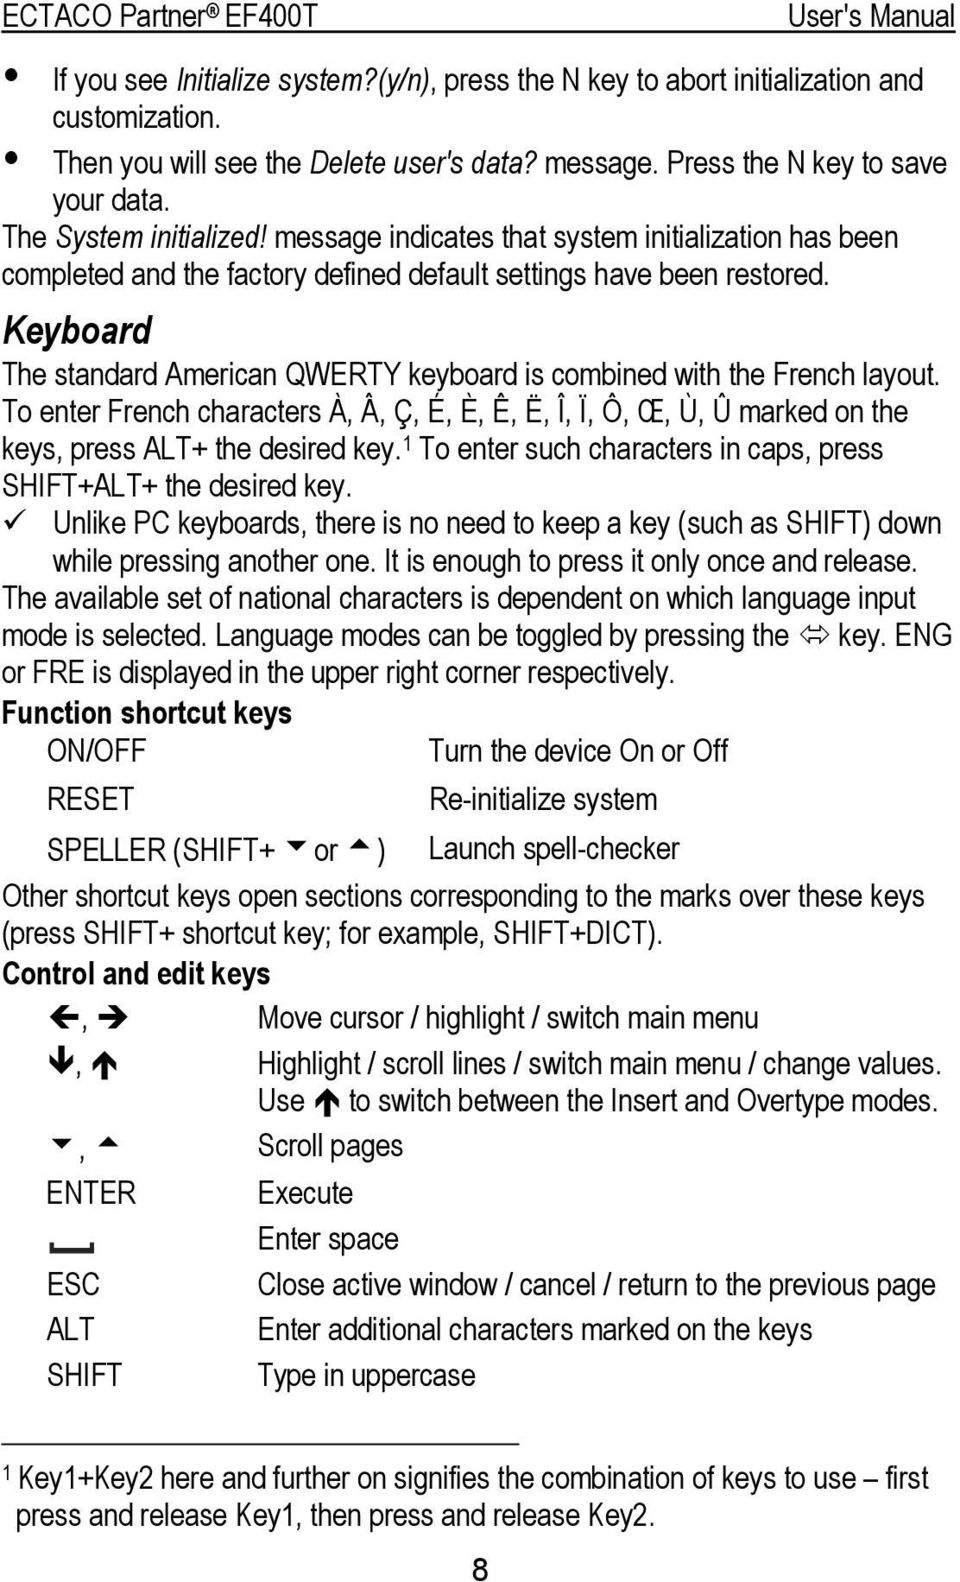 Keyboard The standard American QWERTY keyboard is combined with the French layout. To enter French characters À, Â, Ç, É, È, Ê, Ë, Î, Ï, Ô, Œ, Ù, Û marked on the keys, press ALT+ the desired key.